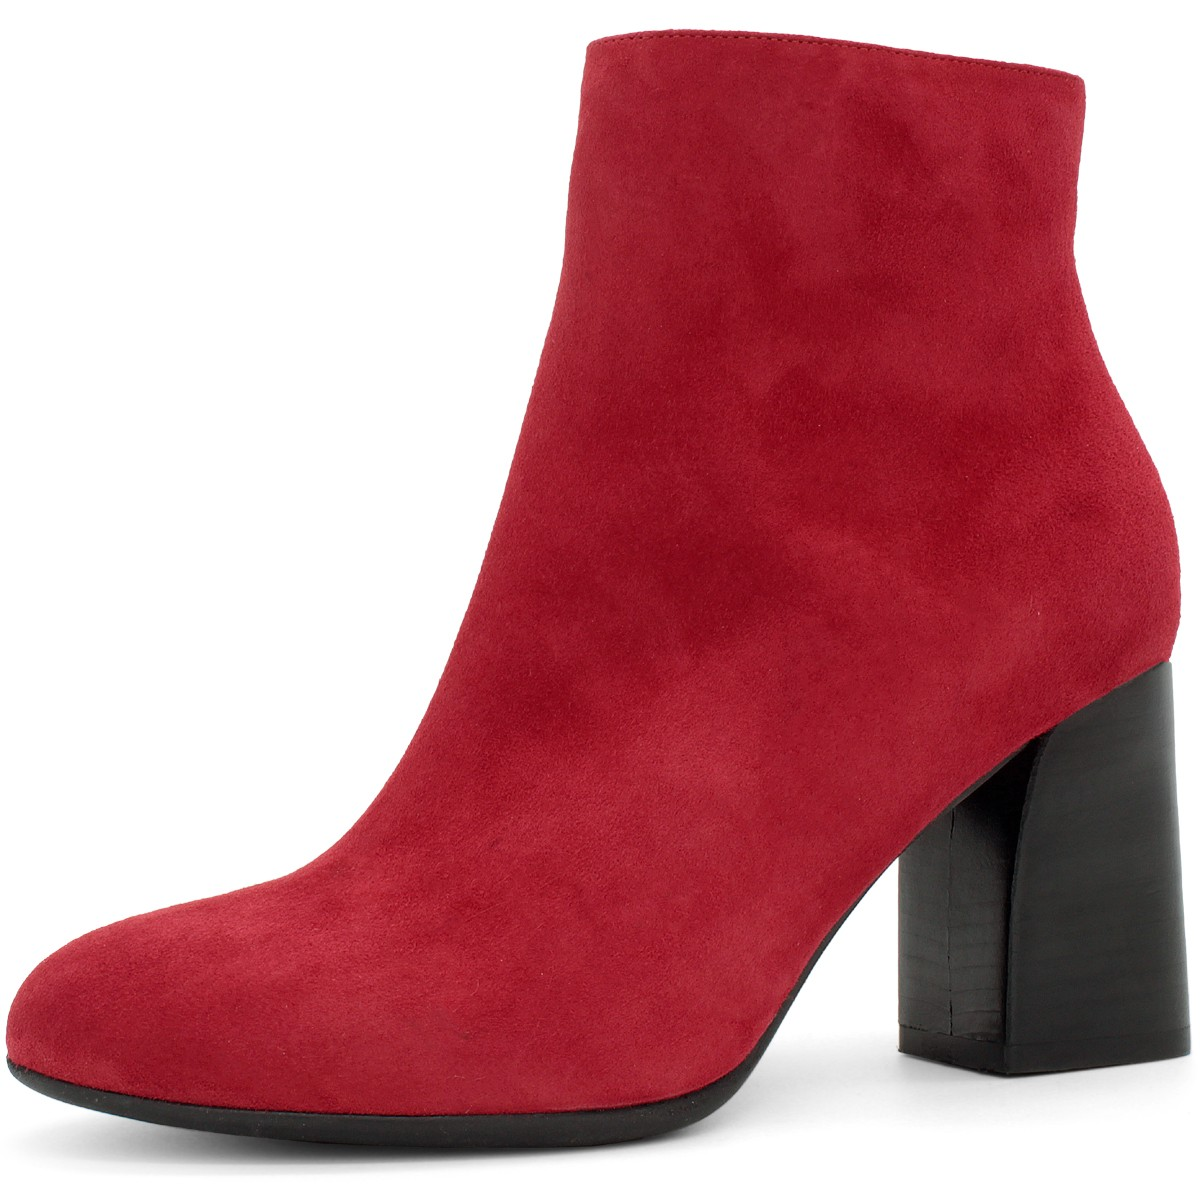 RED SUEDE ROUND TOE ANKLE BOOTS 90MM